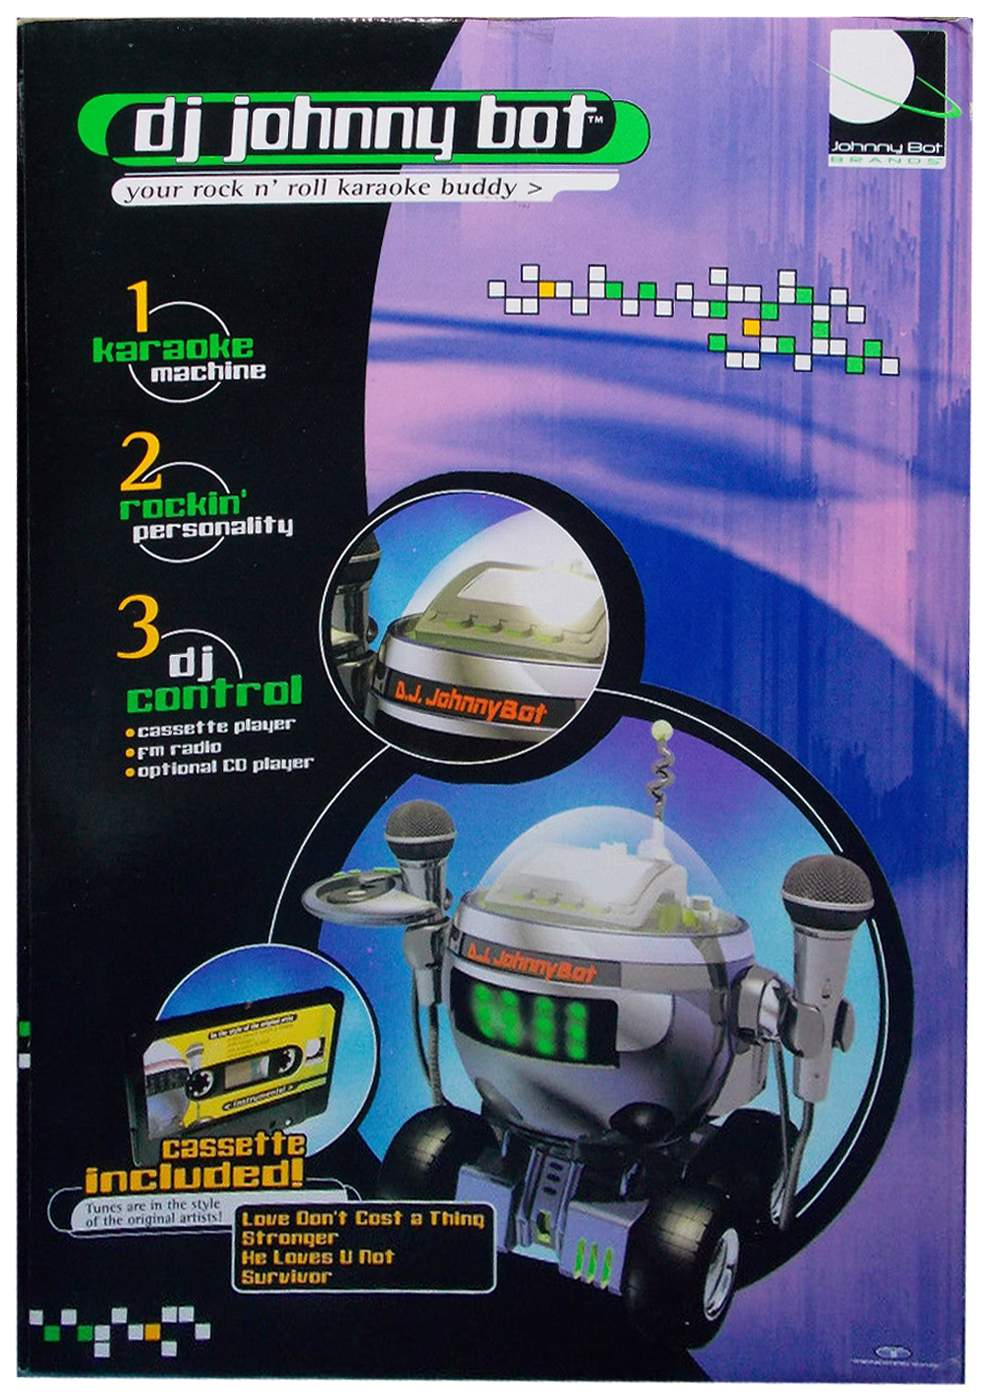 DJ Johnny Bot by Trendmasters - The Old Robots Web Site